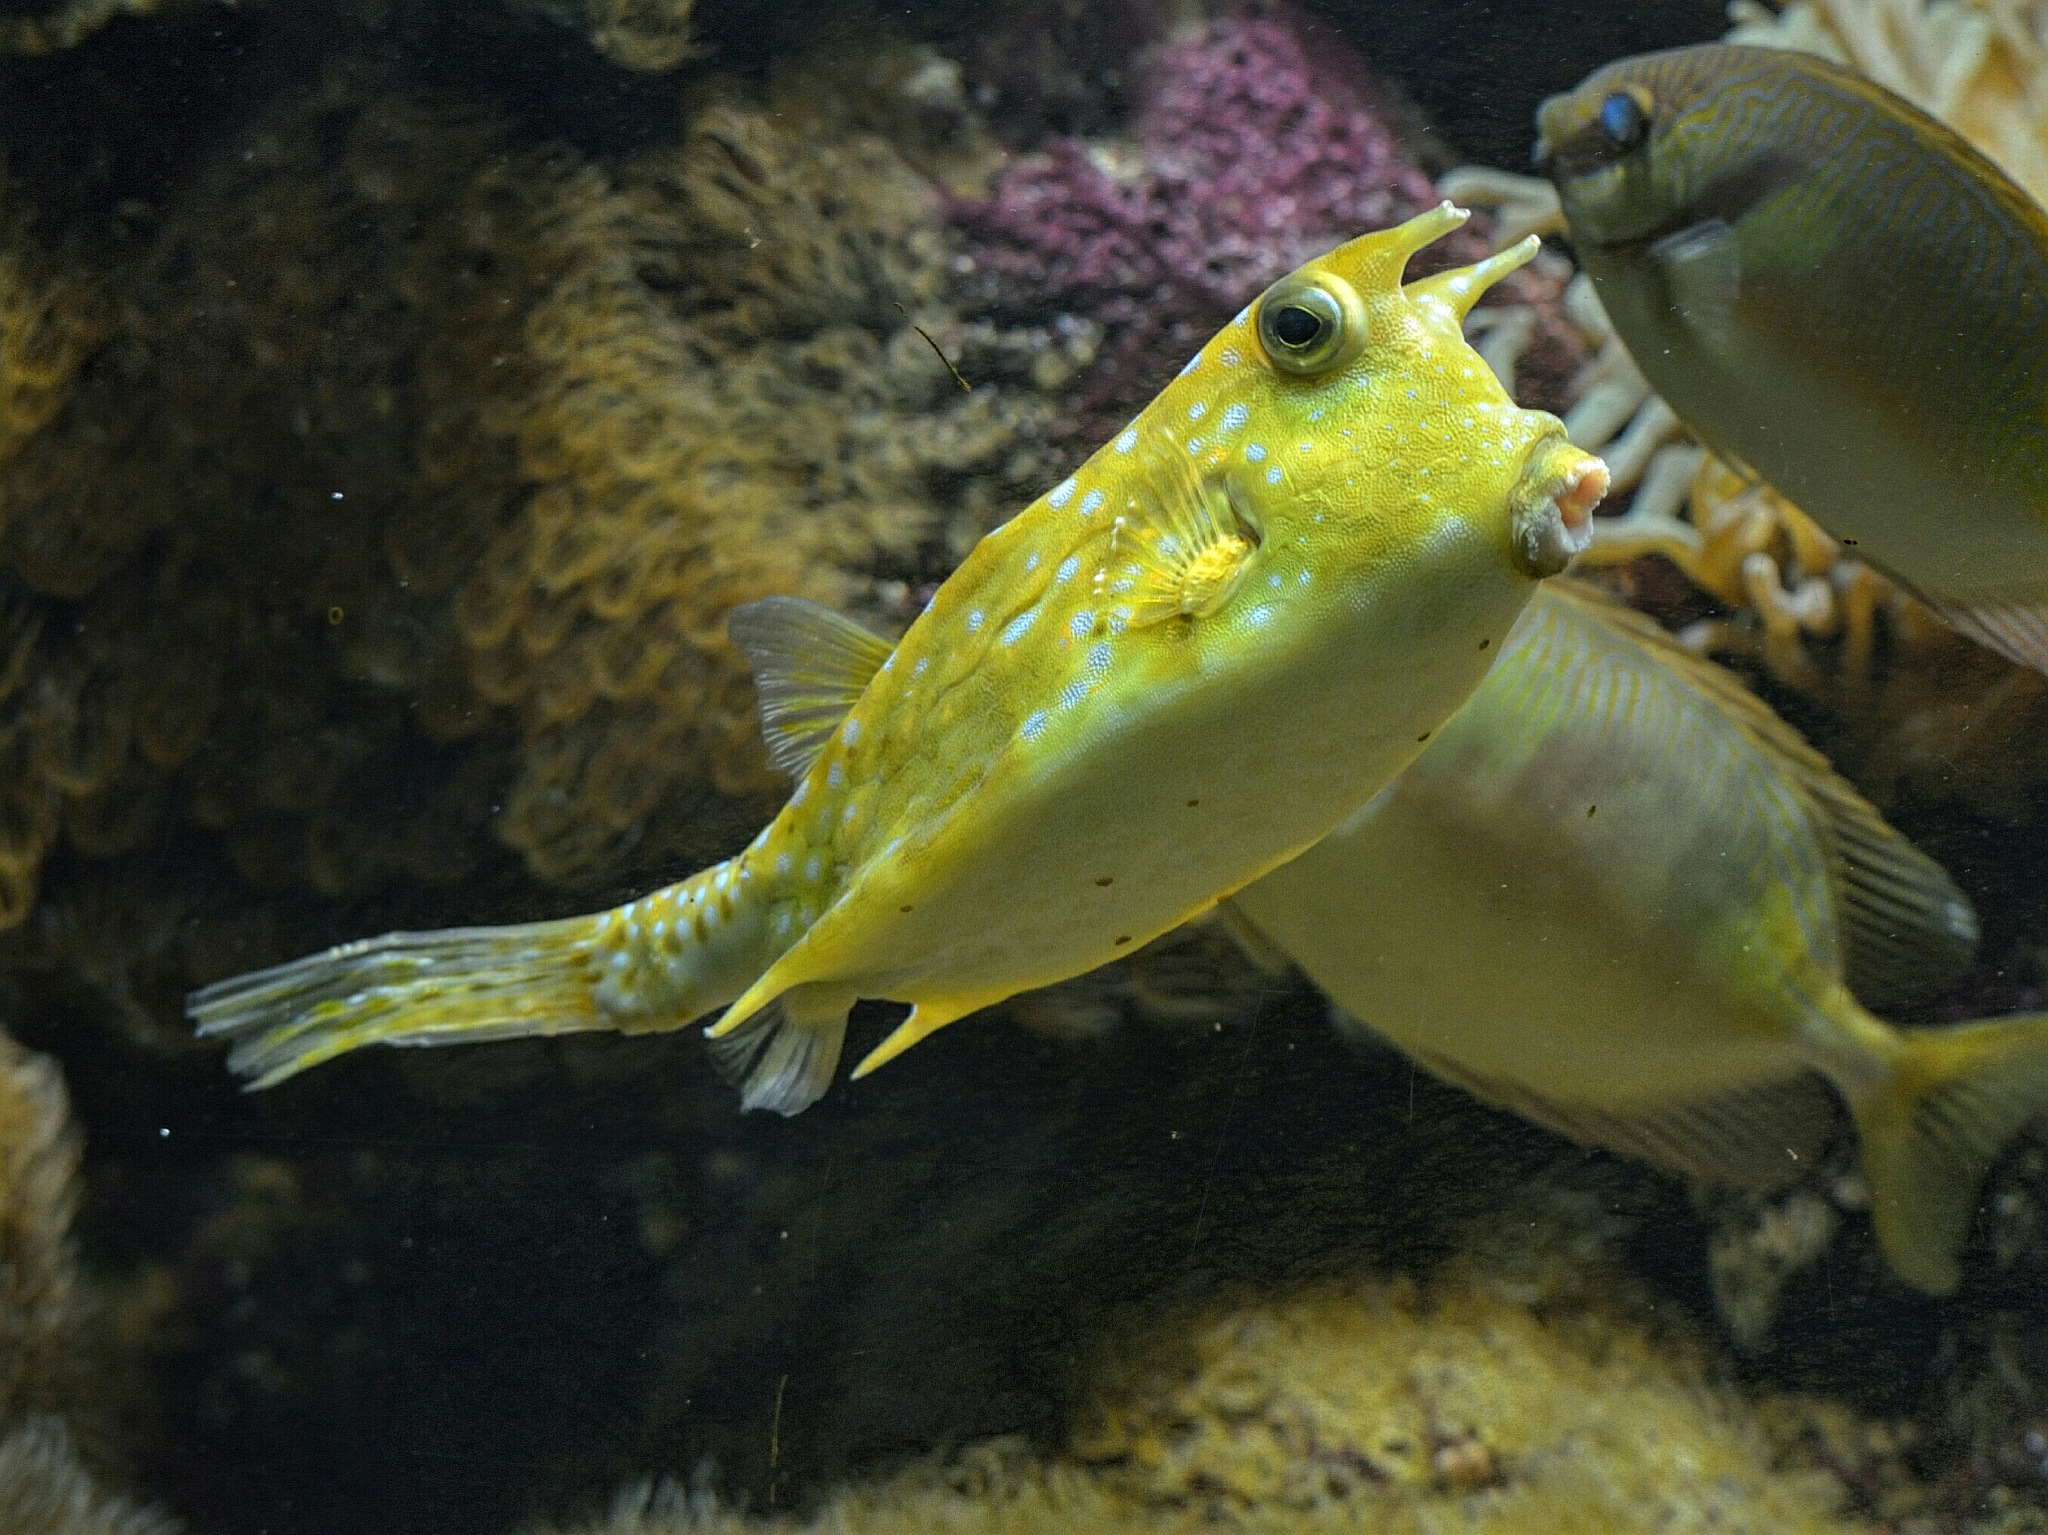 Can anyone name this fish by Henk Meima